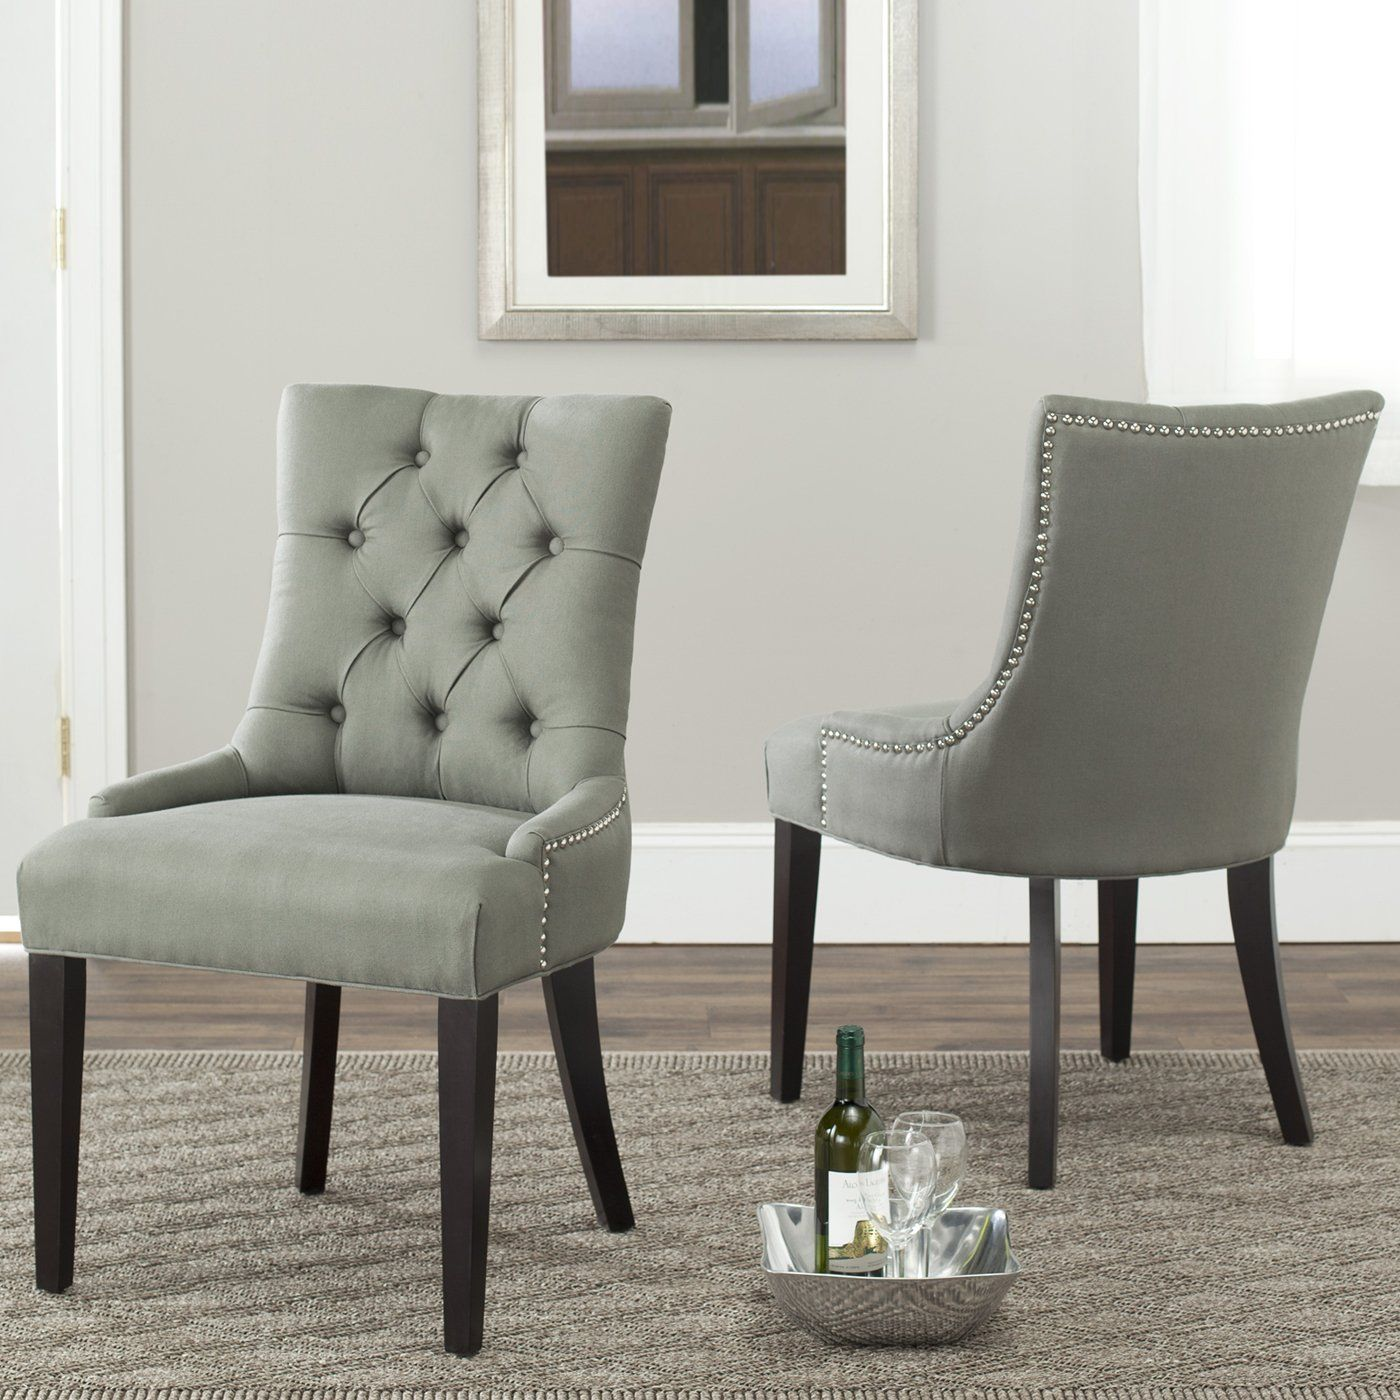 Safavieh furniture mcrcset caylee side chair set of home